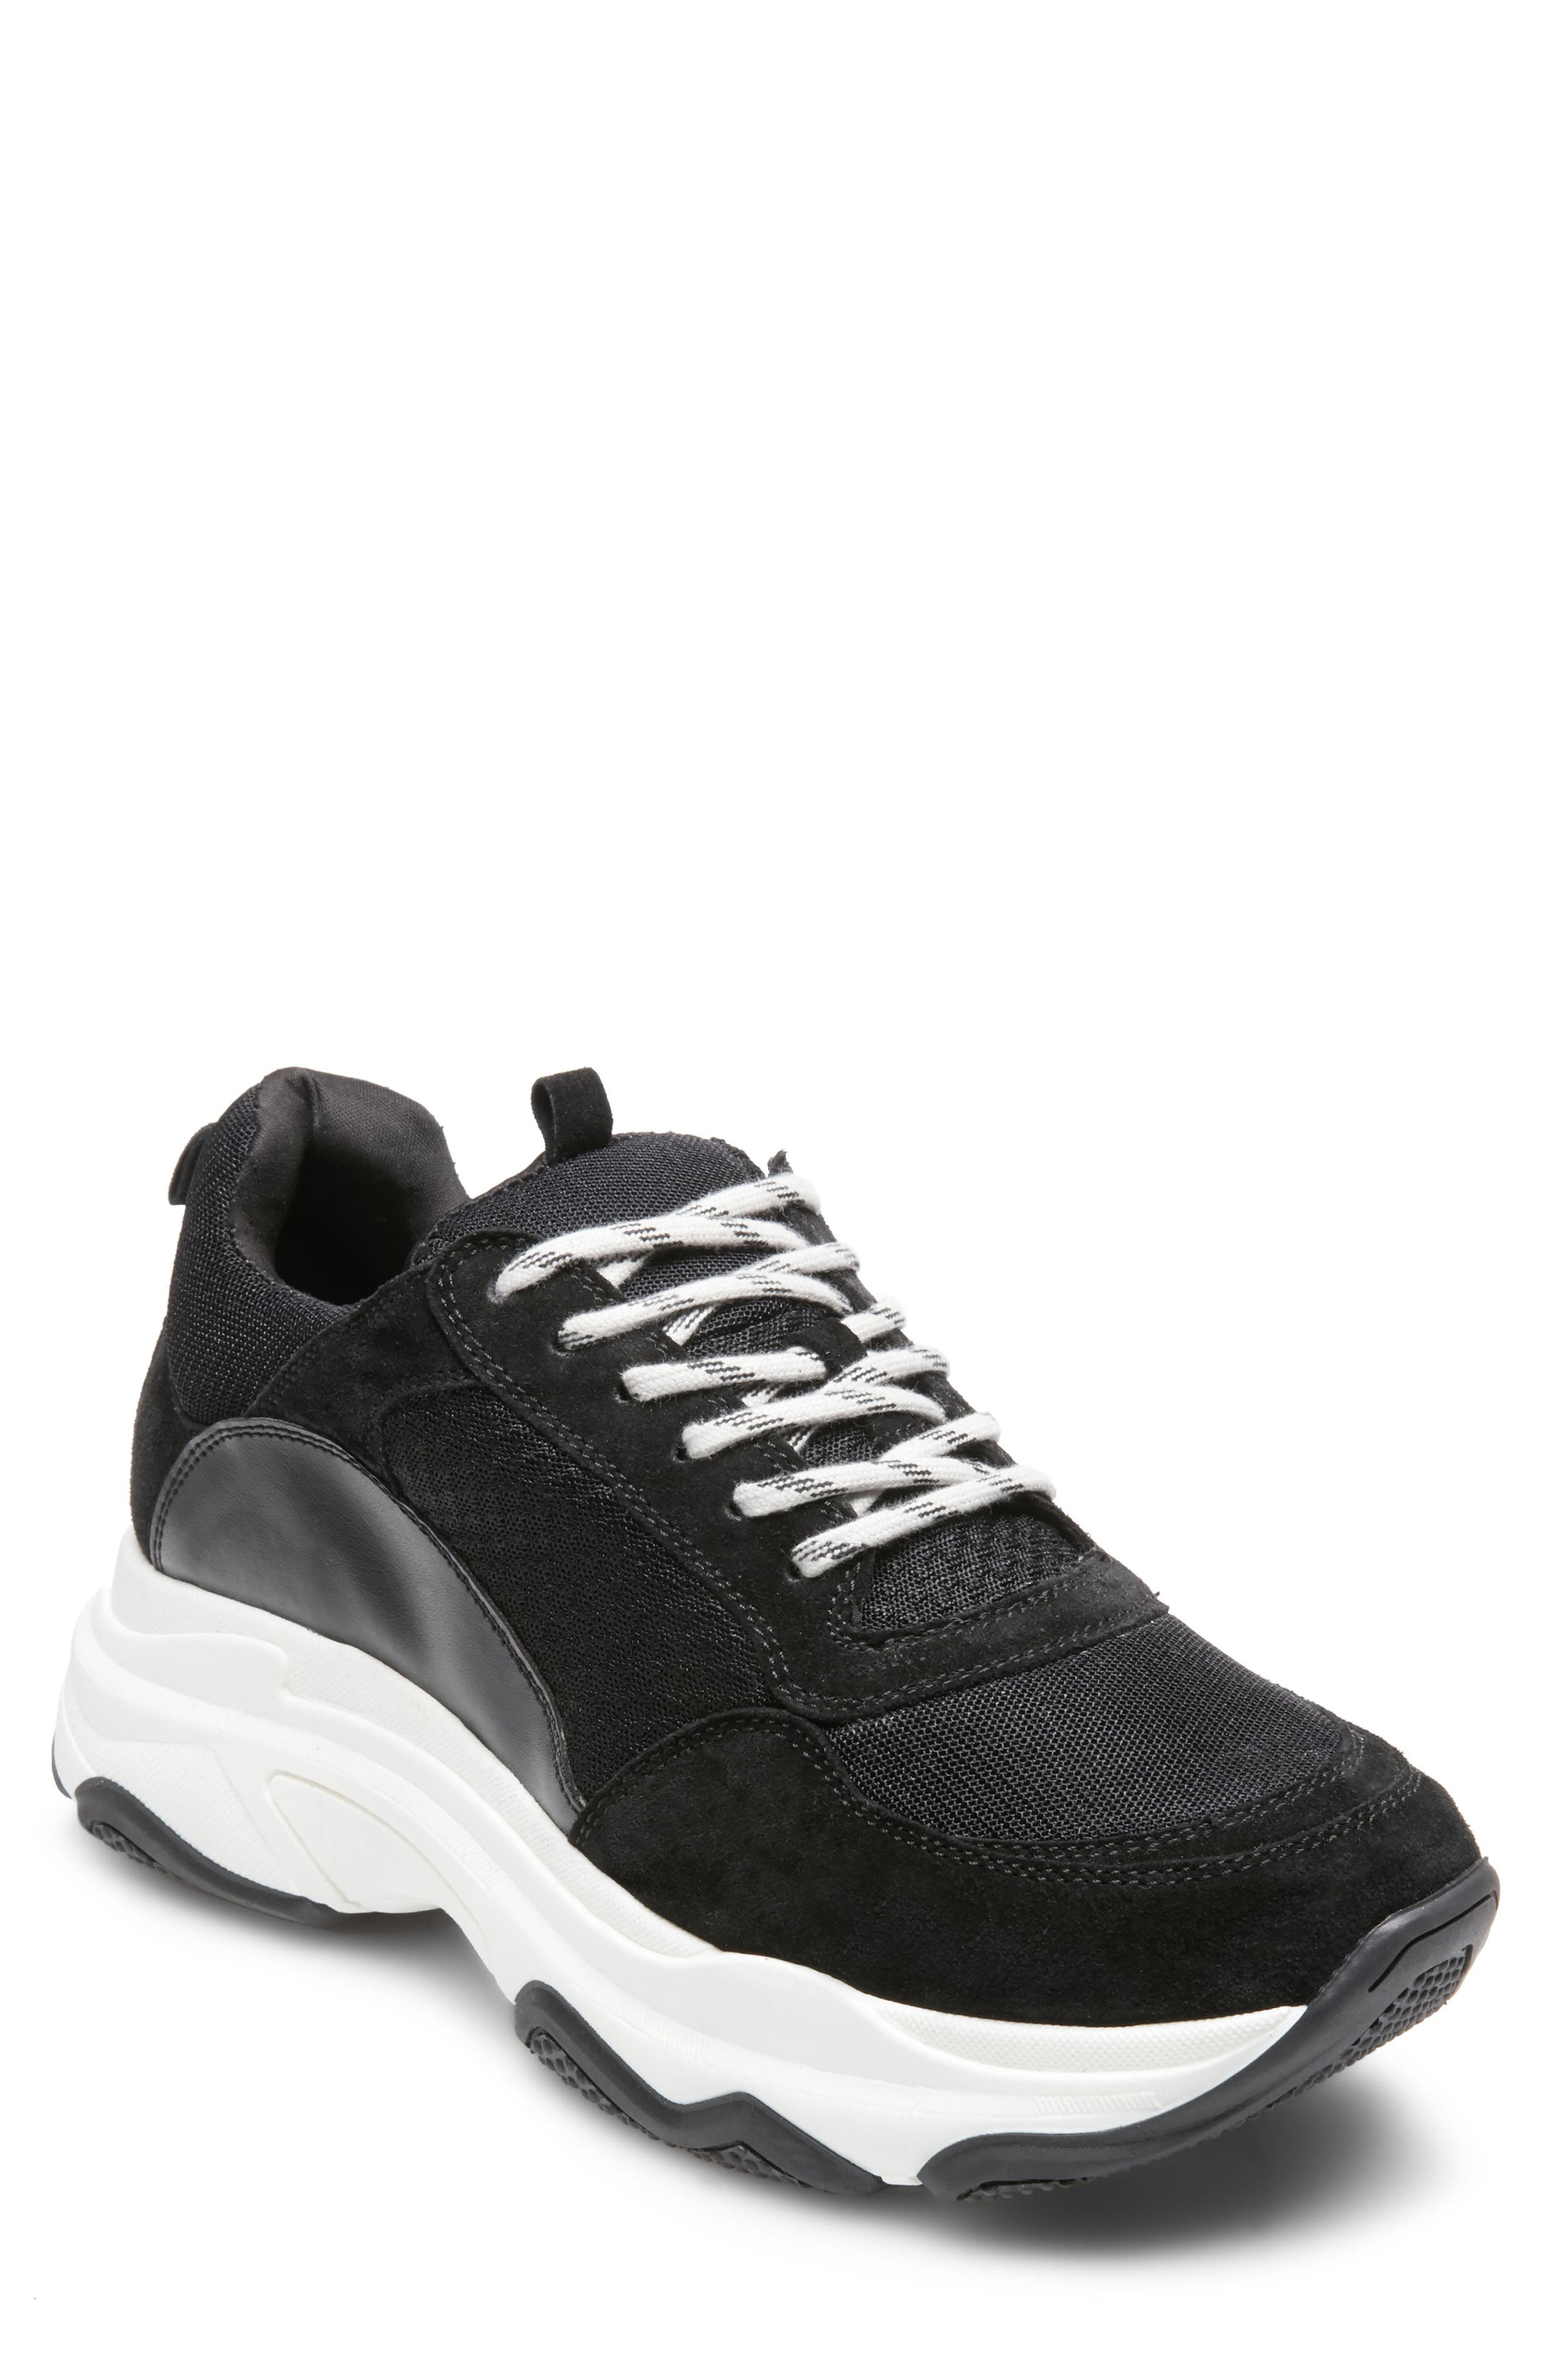 Russell Platform Sneaker,                         Main,                         color, Black Leather